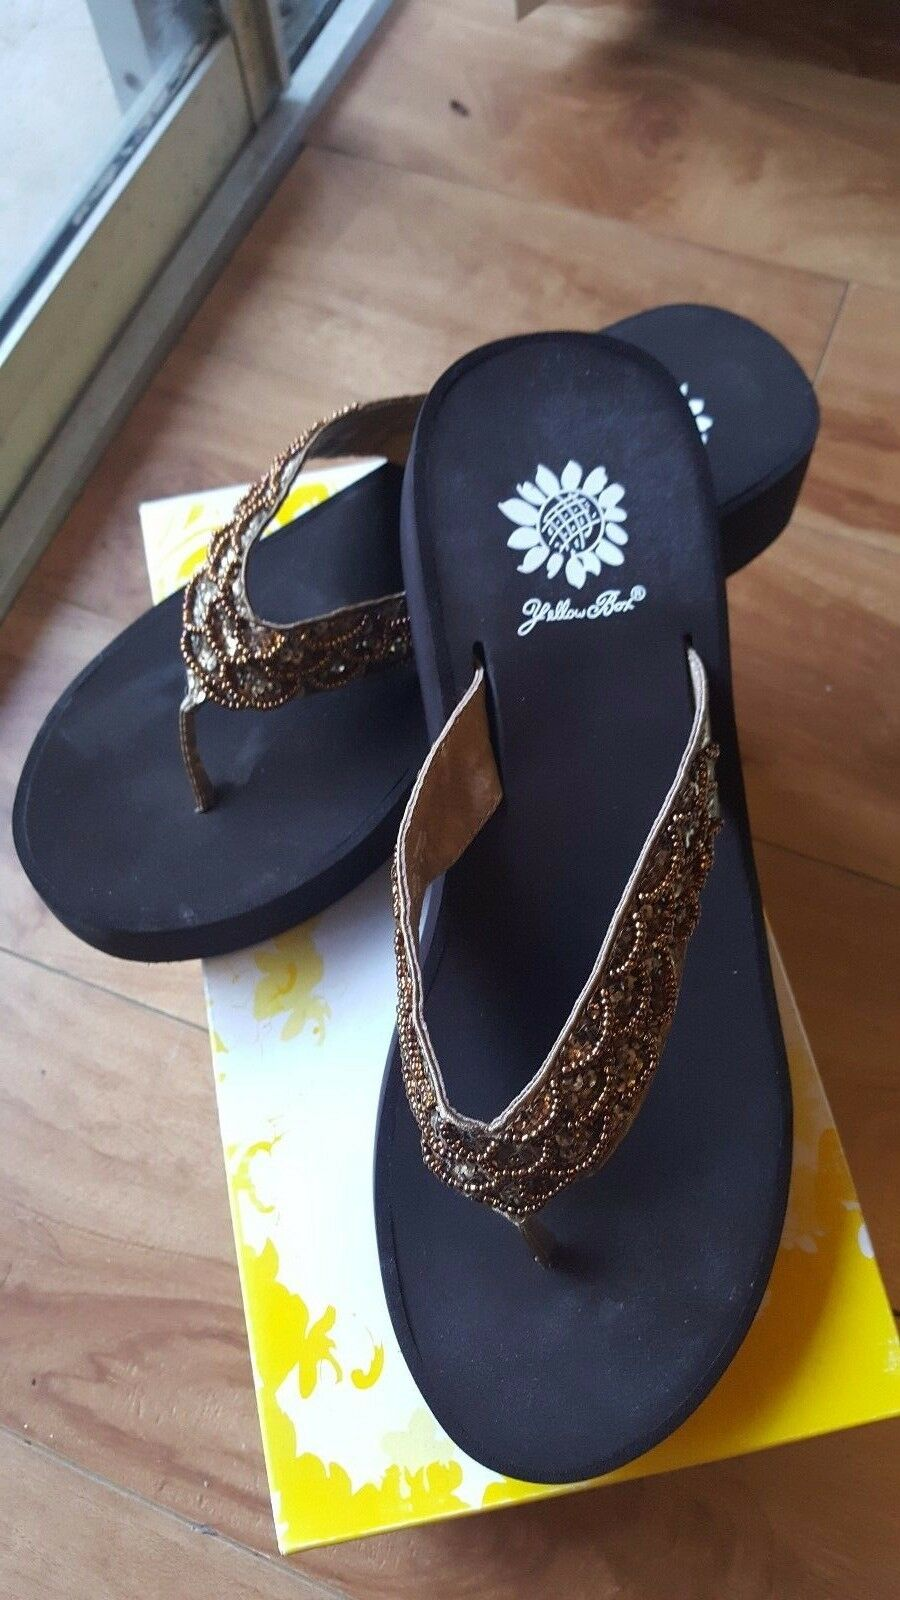 NIB Yellow Box Fleur Brown Women's Sandals